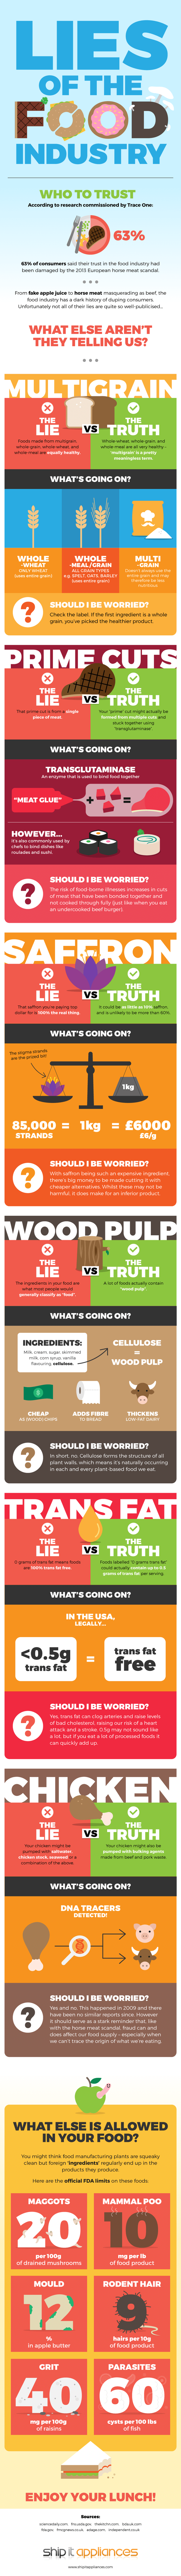 Lies Of the Food Industry